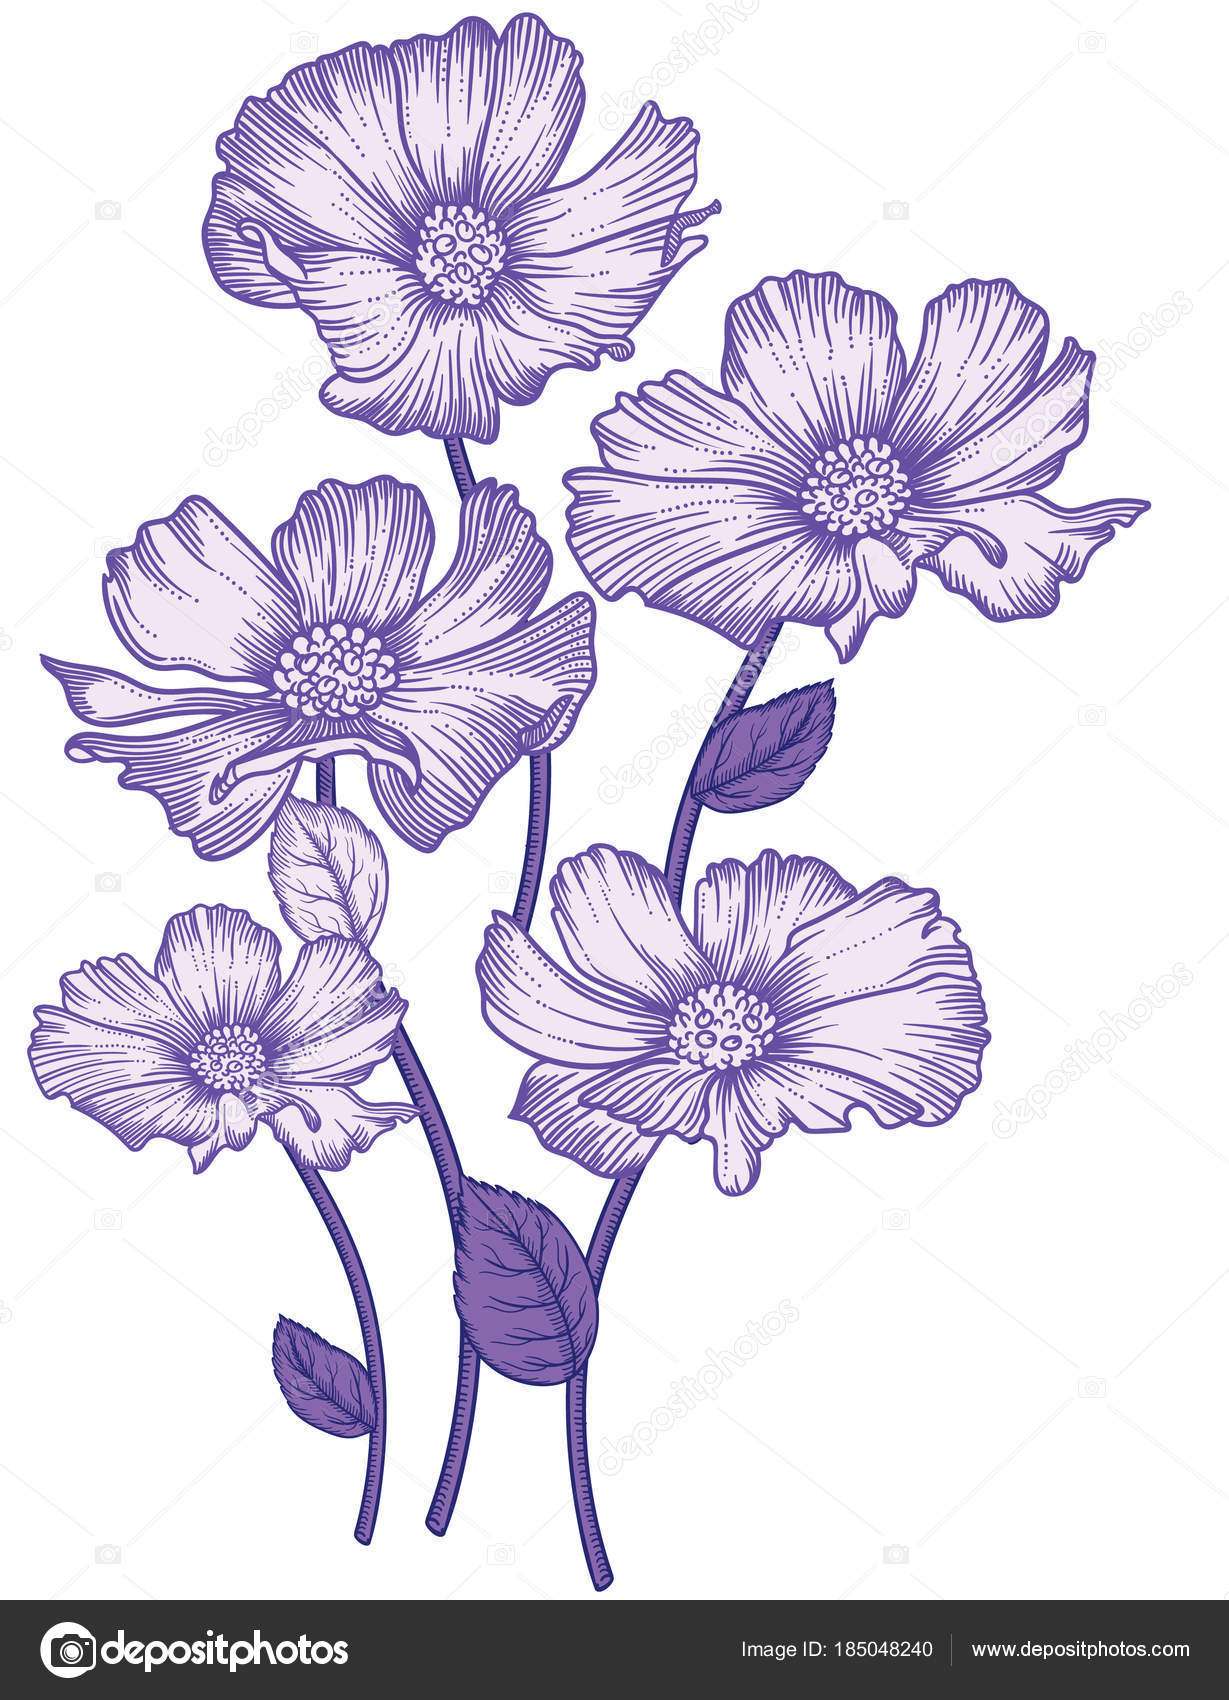 Decorative Flower Drawings: Blooming Forest Flowers , Detailed Hand Drawn Vector